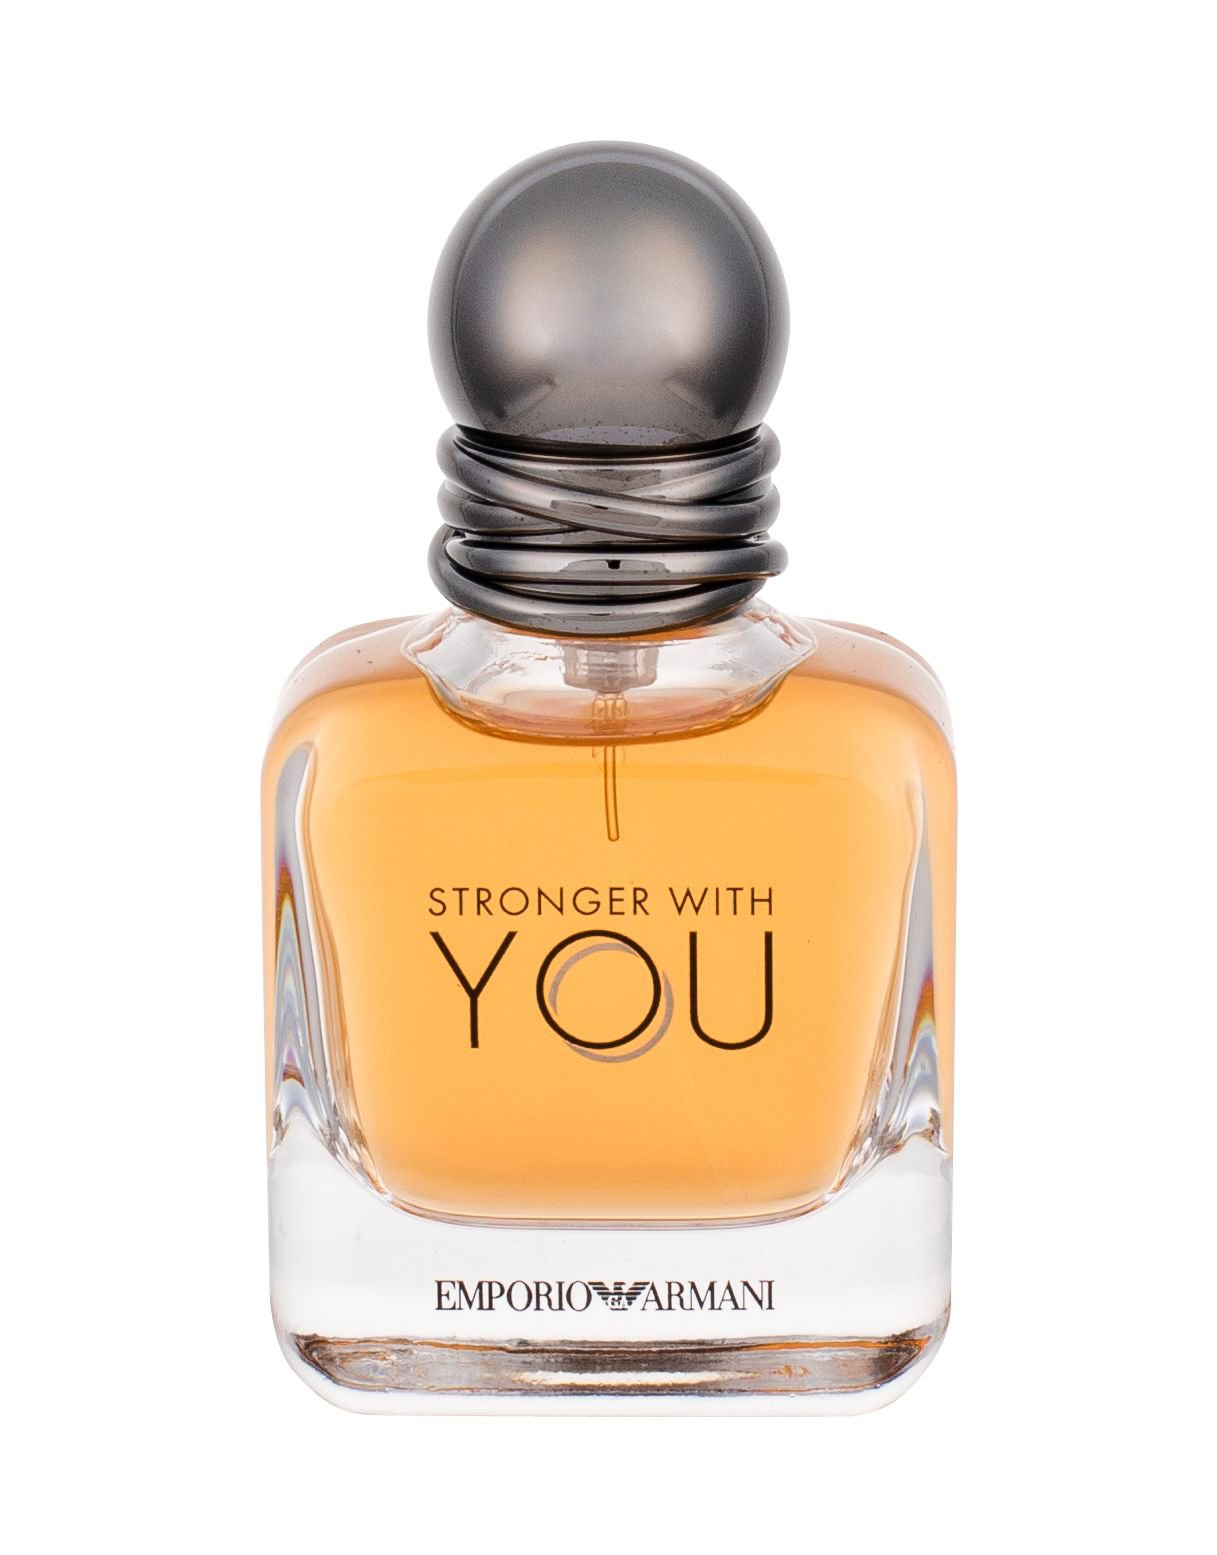 Giorgio Armani Emporio Armani Stronger With You, Toaletná voda 30ml